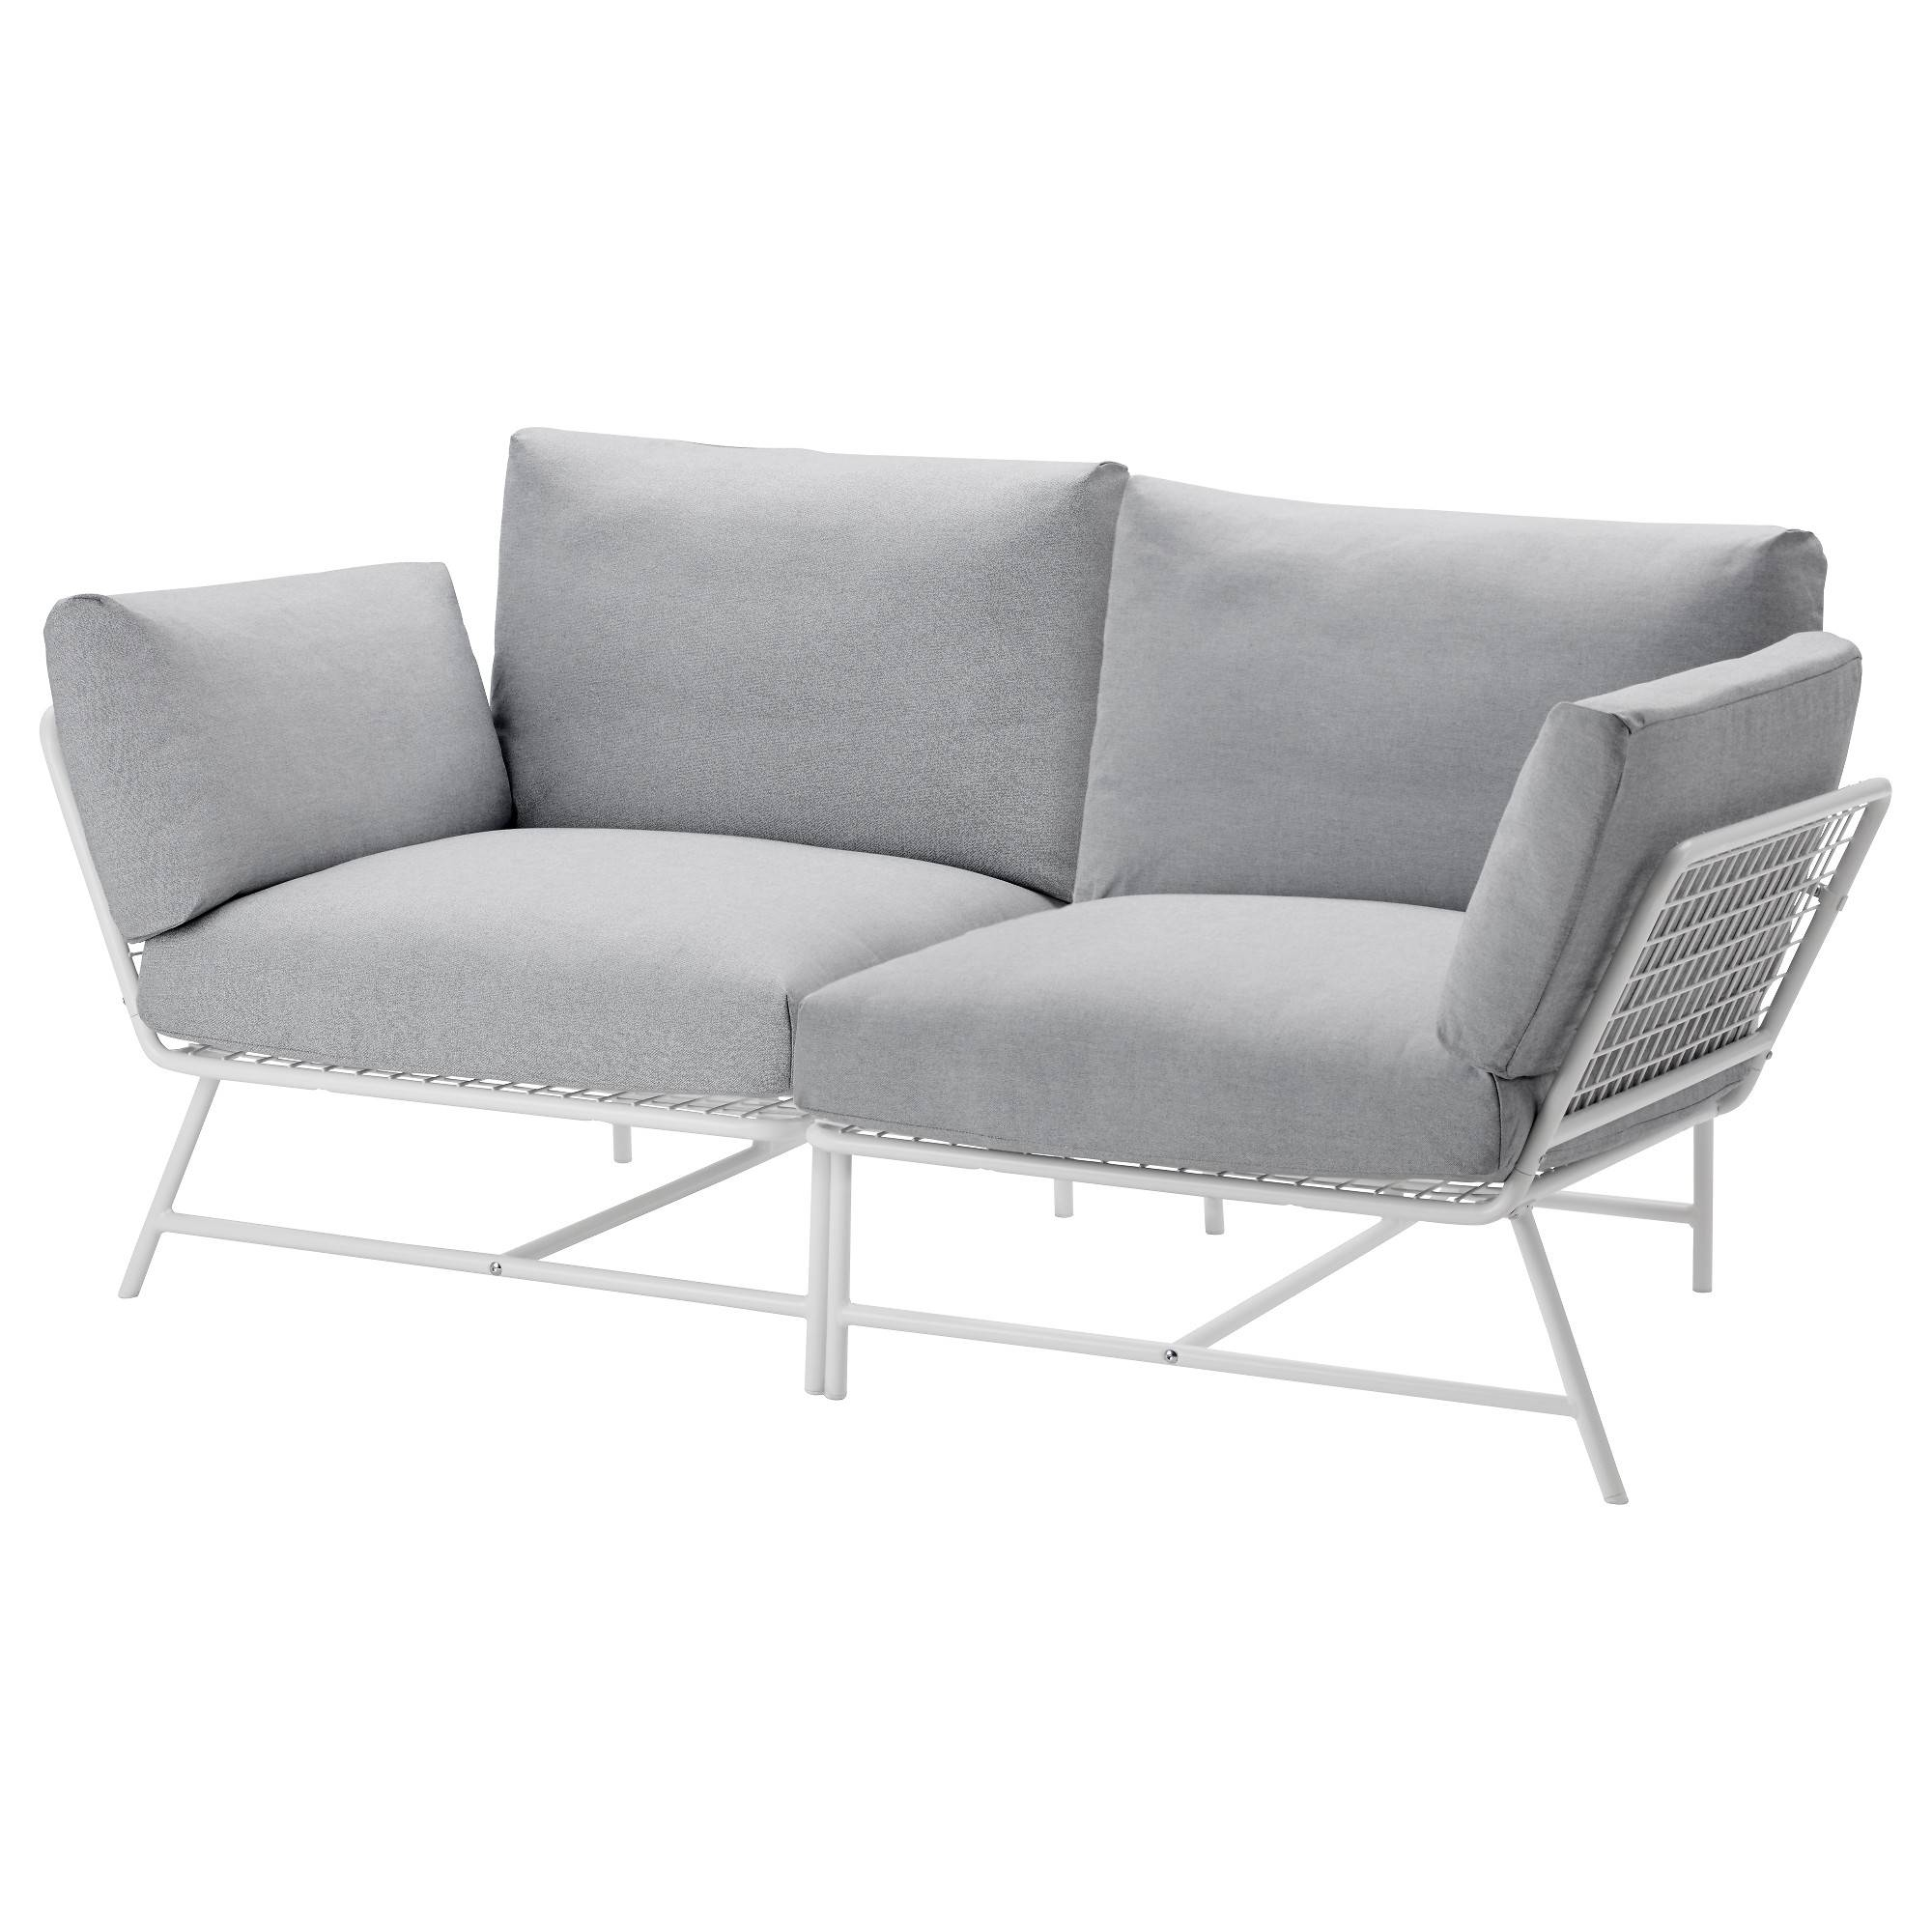 Fancy White Sofa Chair 32 About Remodel Sofa Room Ideas With White regarding White Sofa Chairs (Image 11 of 30)